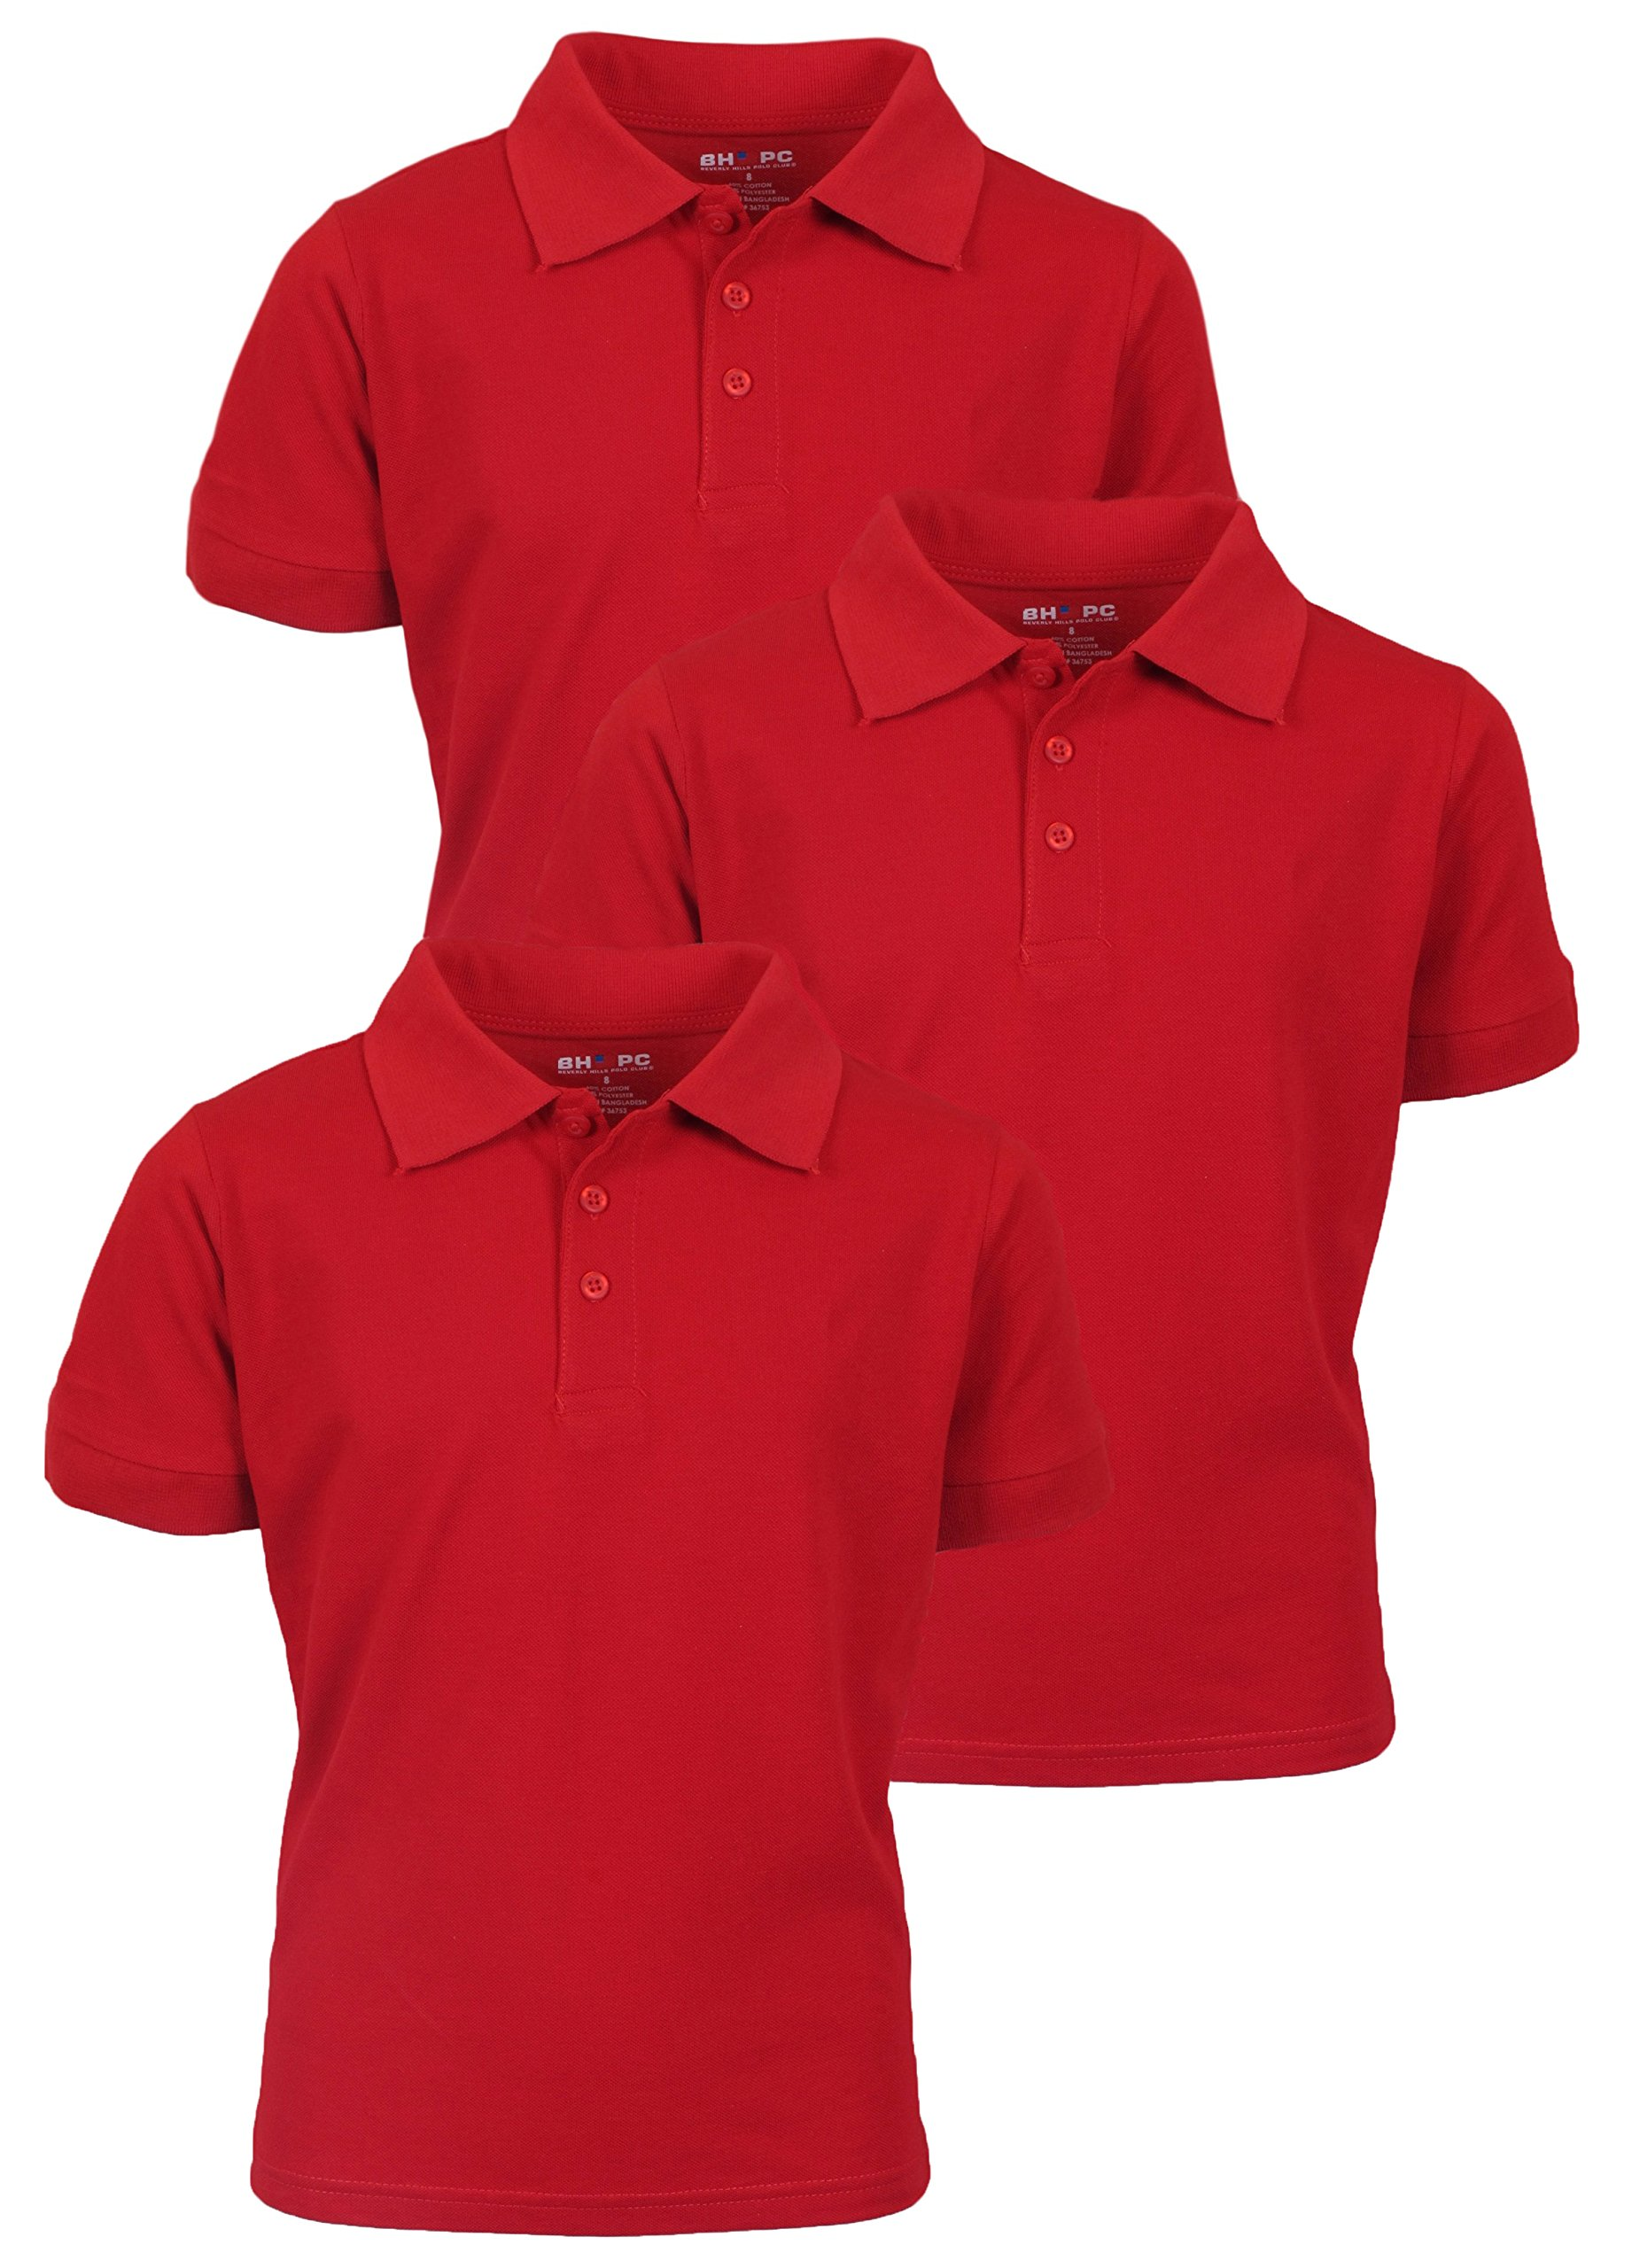 Beverly Hills Polo Club 3 Pack of Boys' Short Sleeve Pique Uniform Polo Shirts, Size 16, Red by Beverly Hills Polo Club (Image #1)